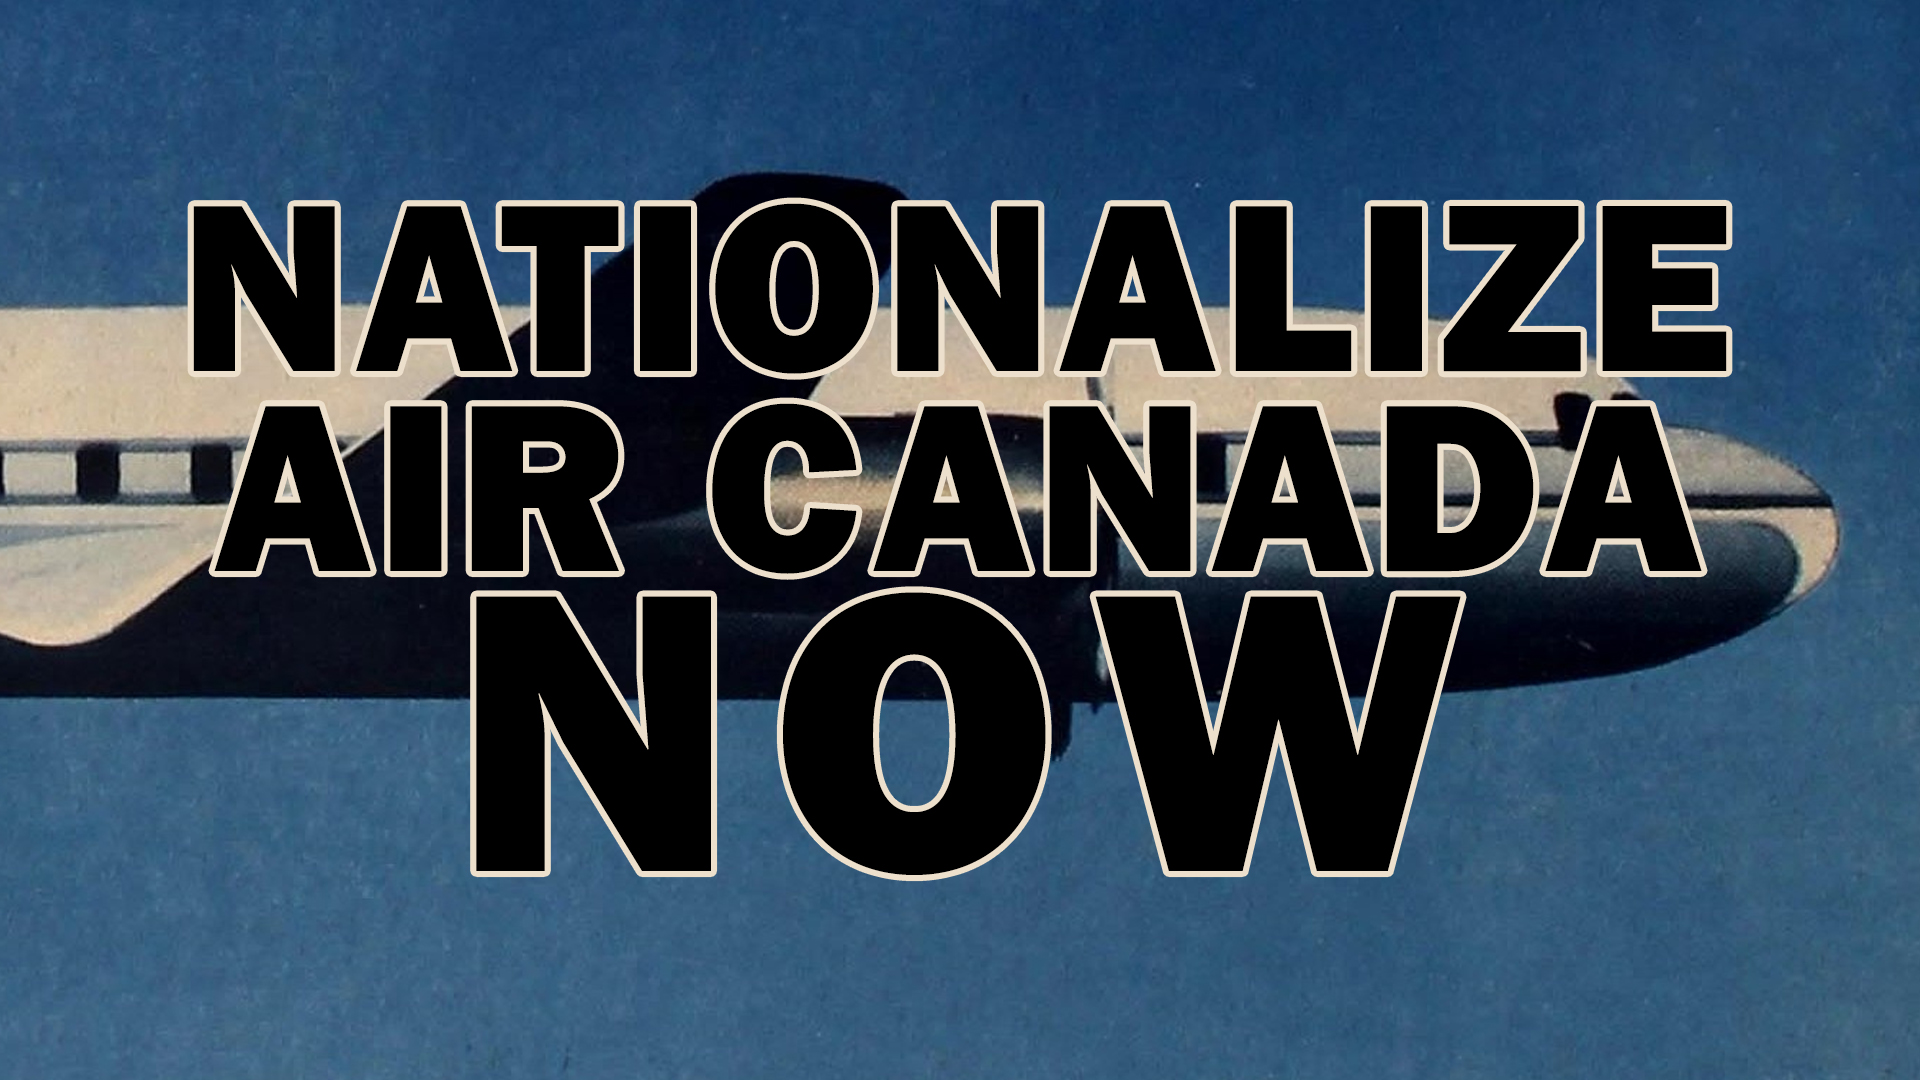 Nationalize Air Canada Now